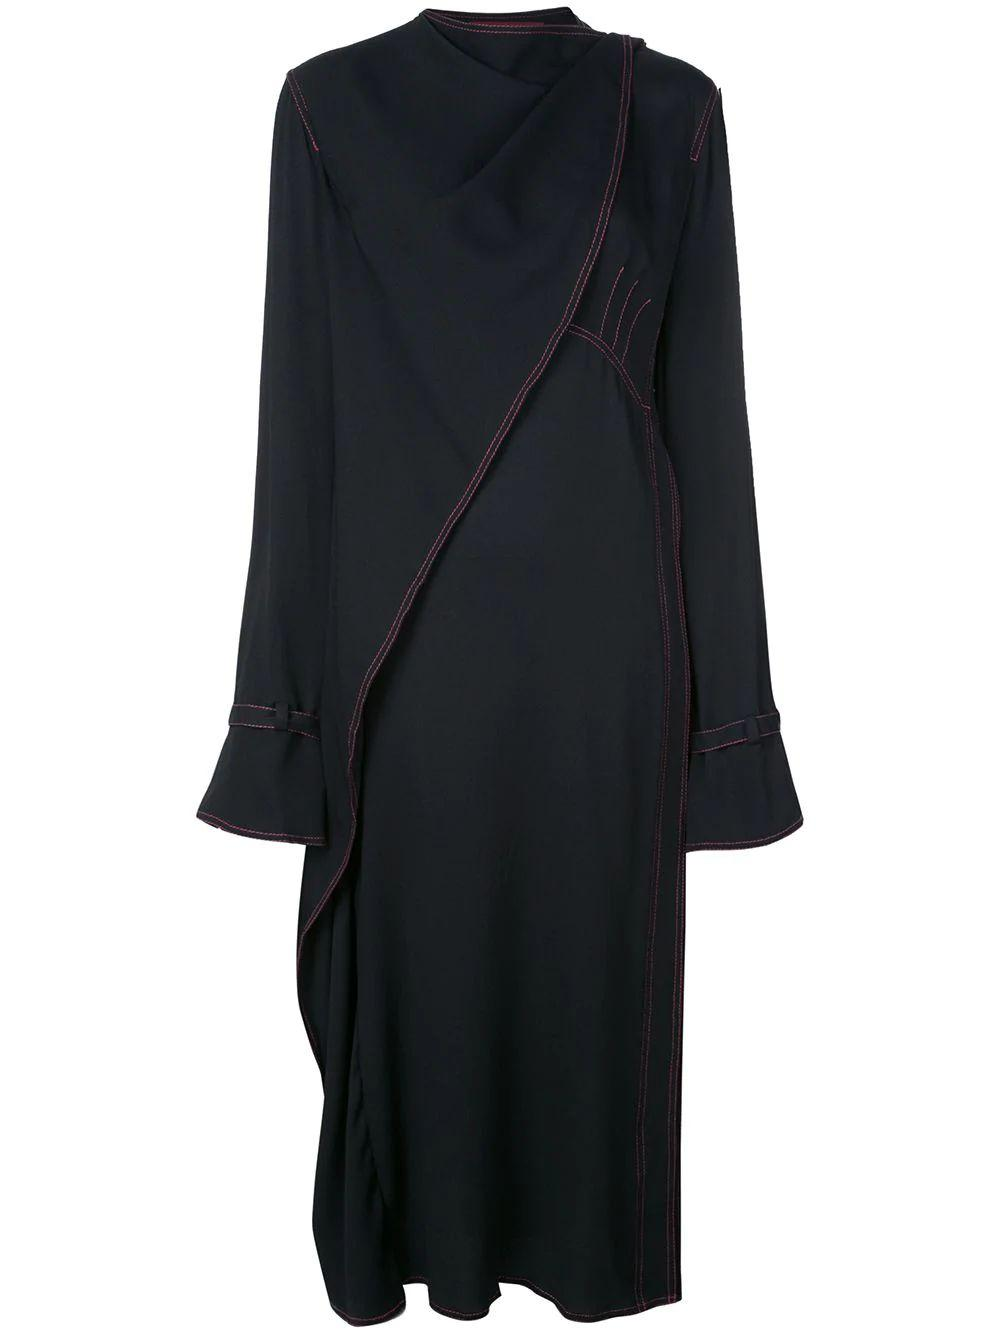 Dimity Marocaine Long Sleeve Dress With Straps Item # 13MR5194-MAROCAINE